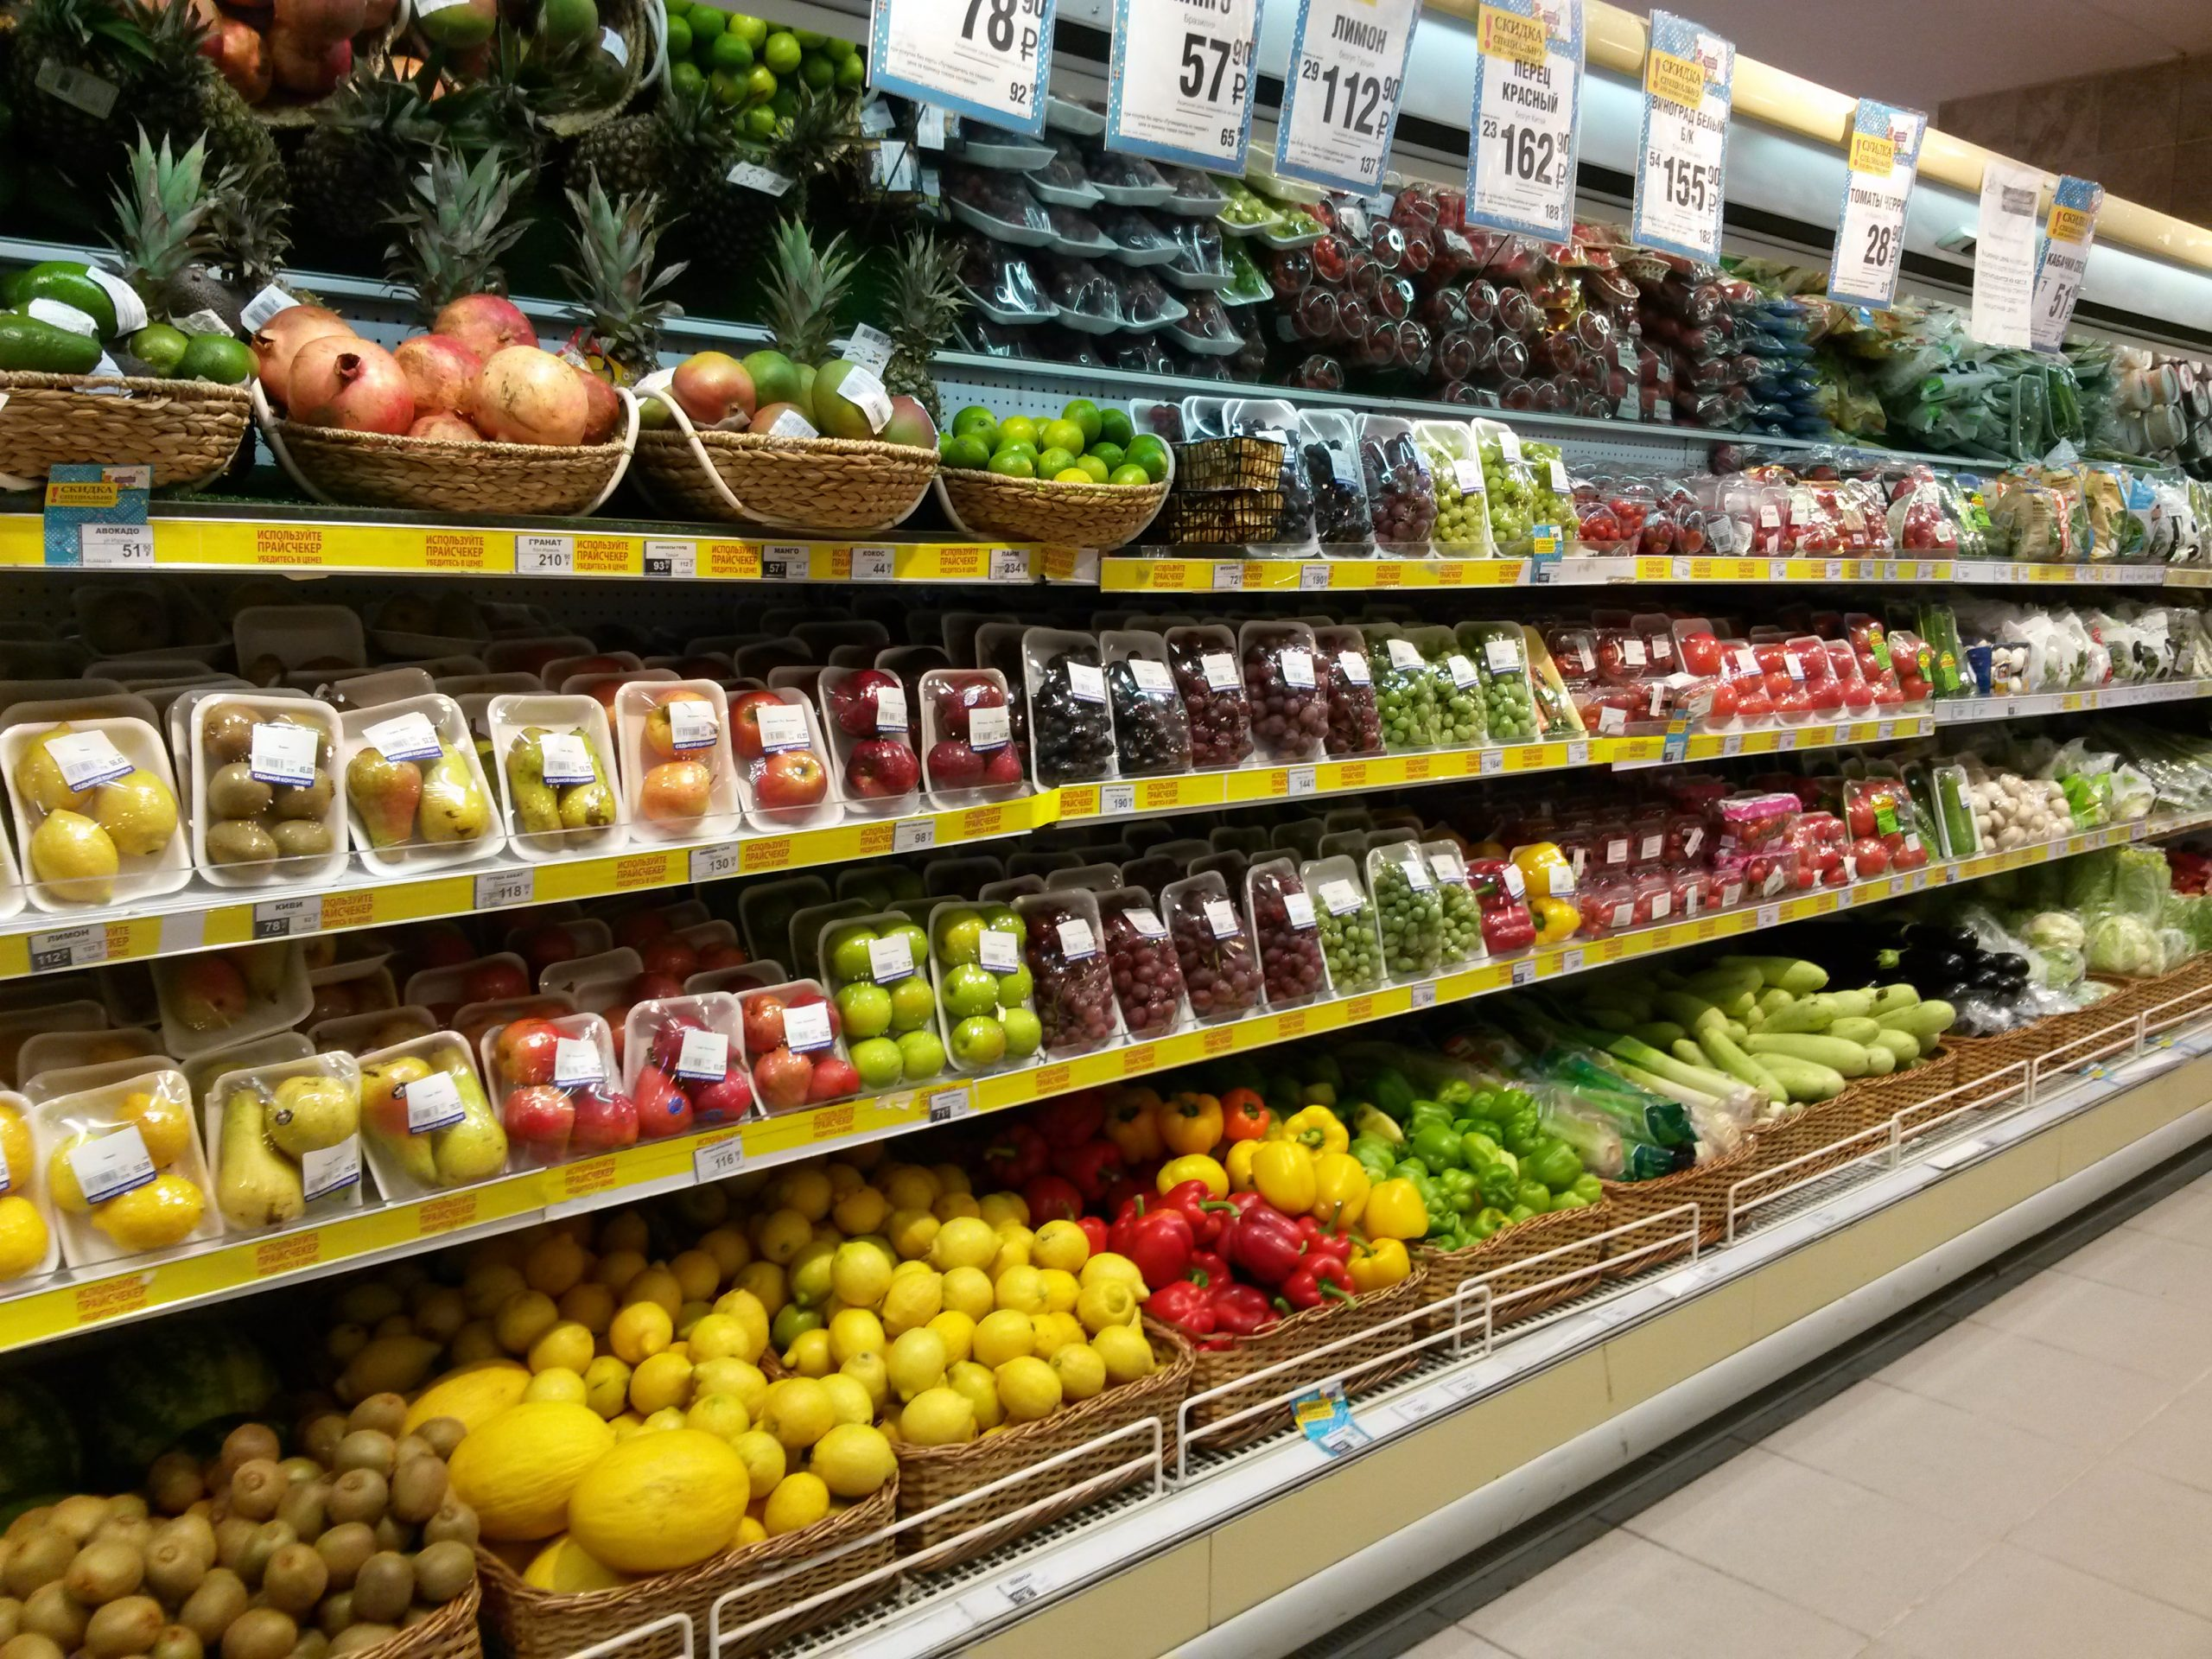 7th Continent, one of the largest Russian retailers, promotes healthy lifestyles and a large variety of exotic and flavorsome fruit and vegetables.